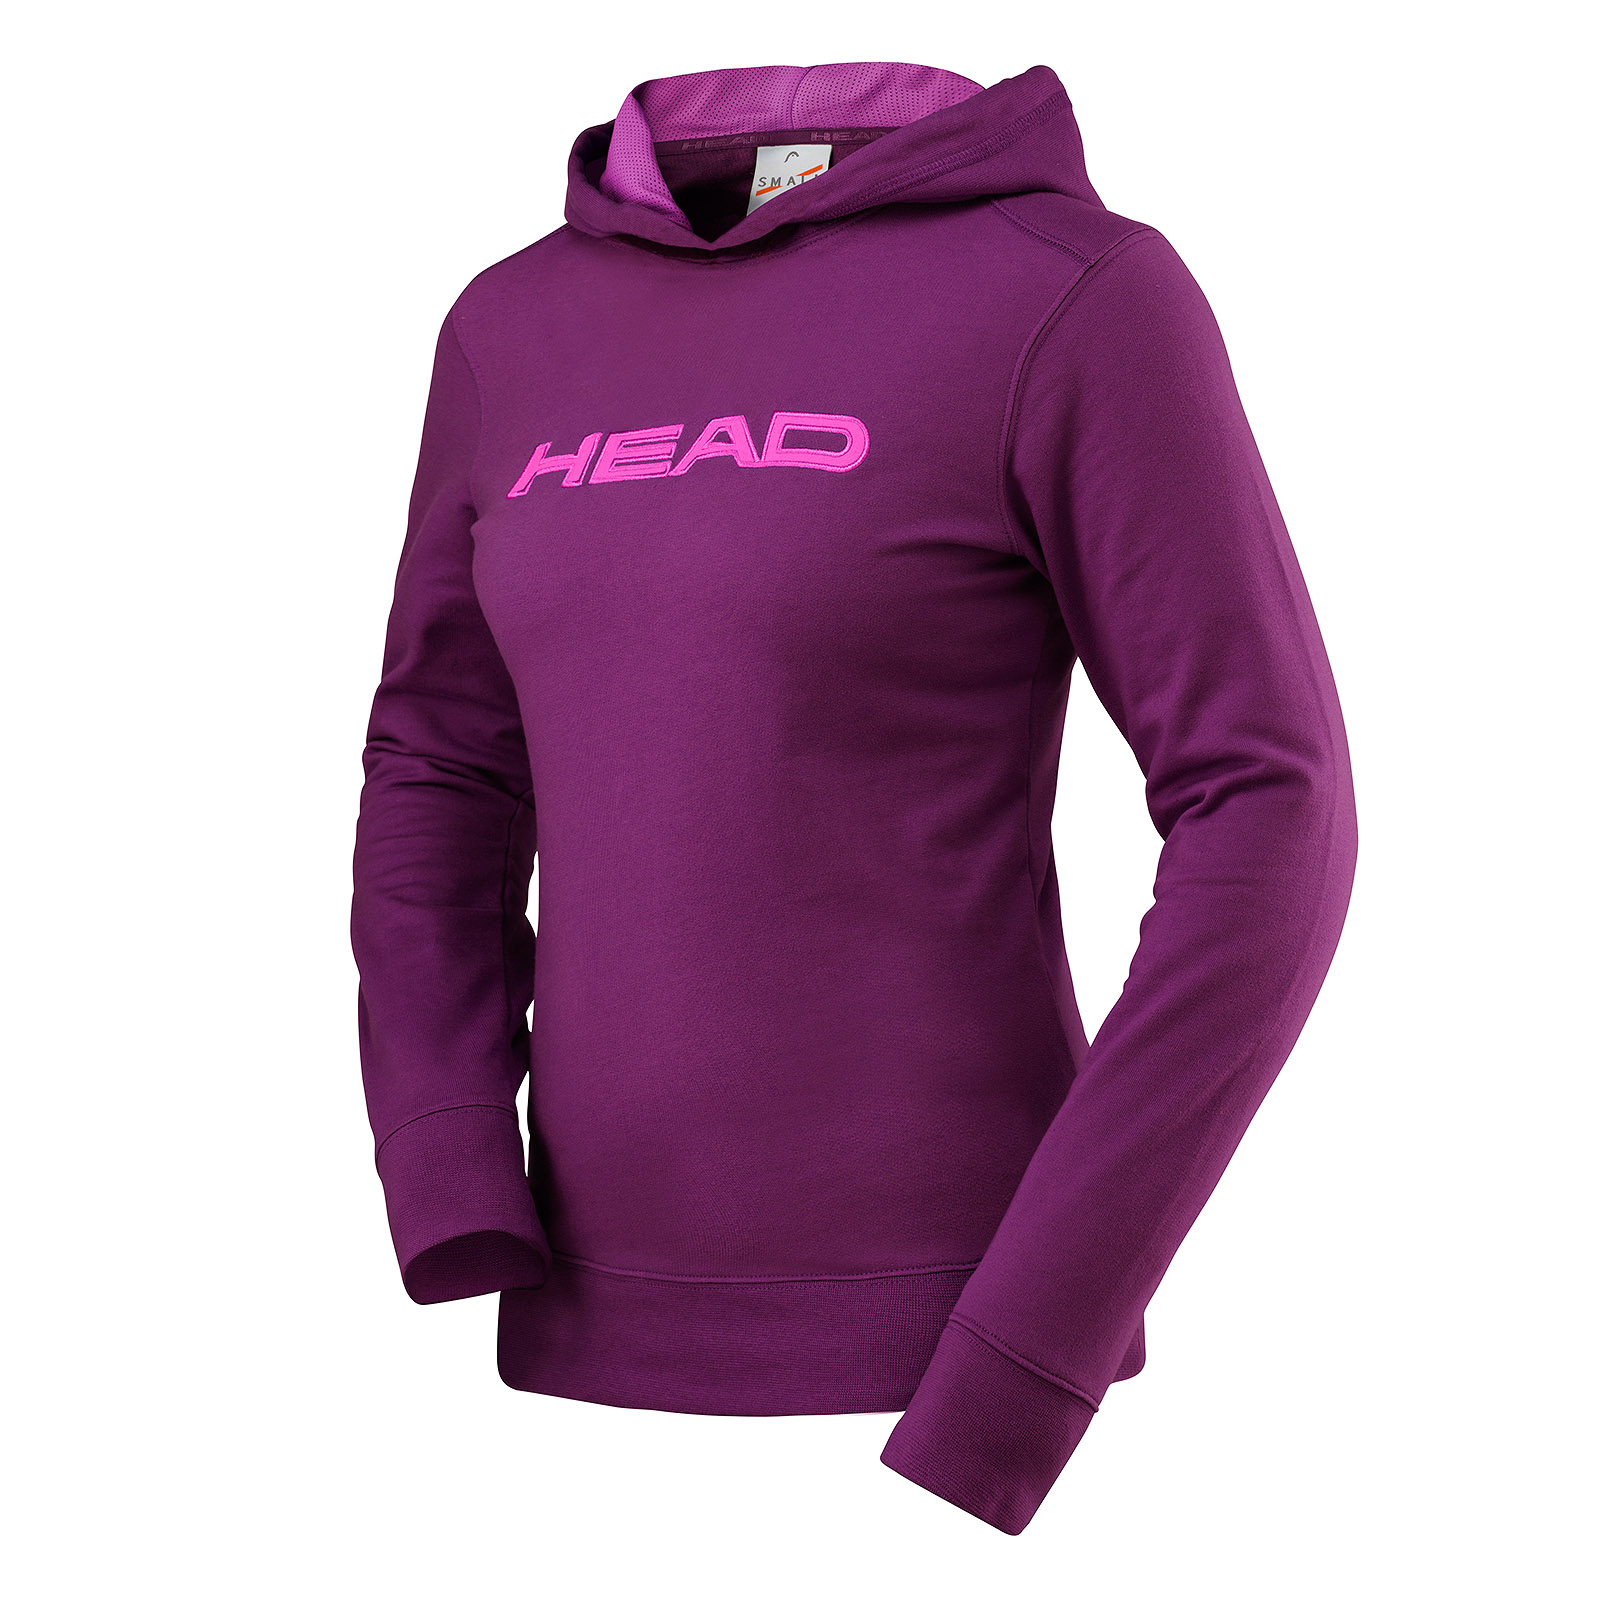 HEAD Byron Hoody Girl Purple 128